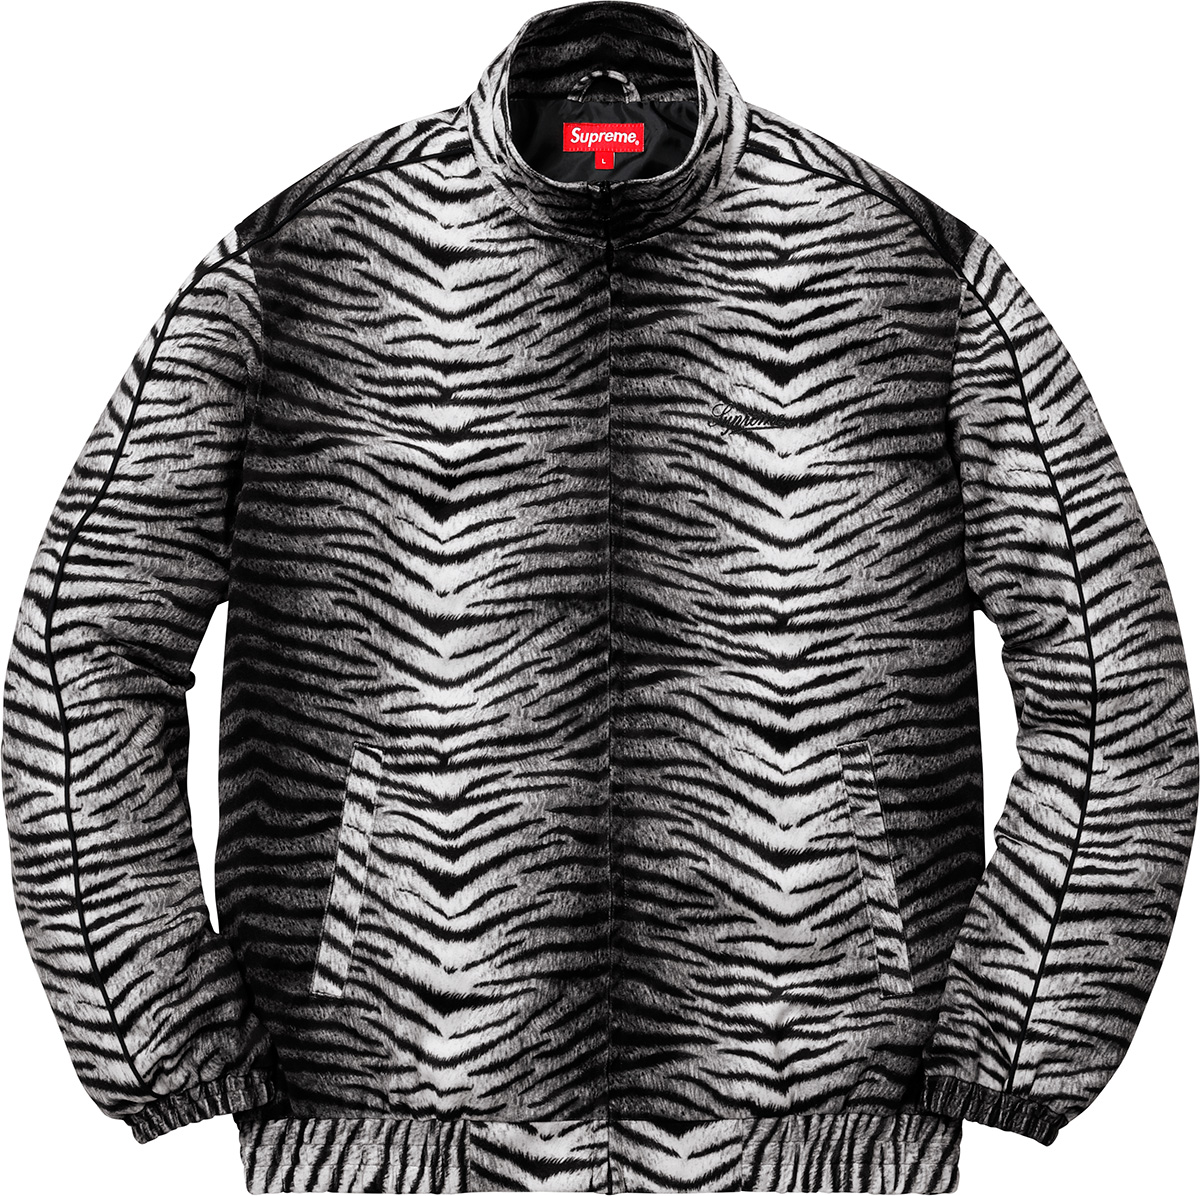 supreme-18ss-spring-summer-tiger-stripe-track-jacket